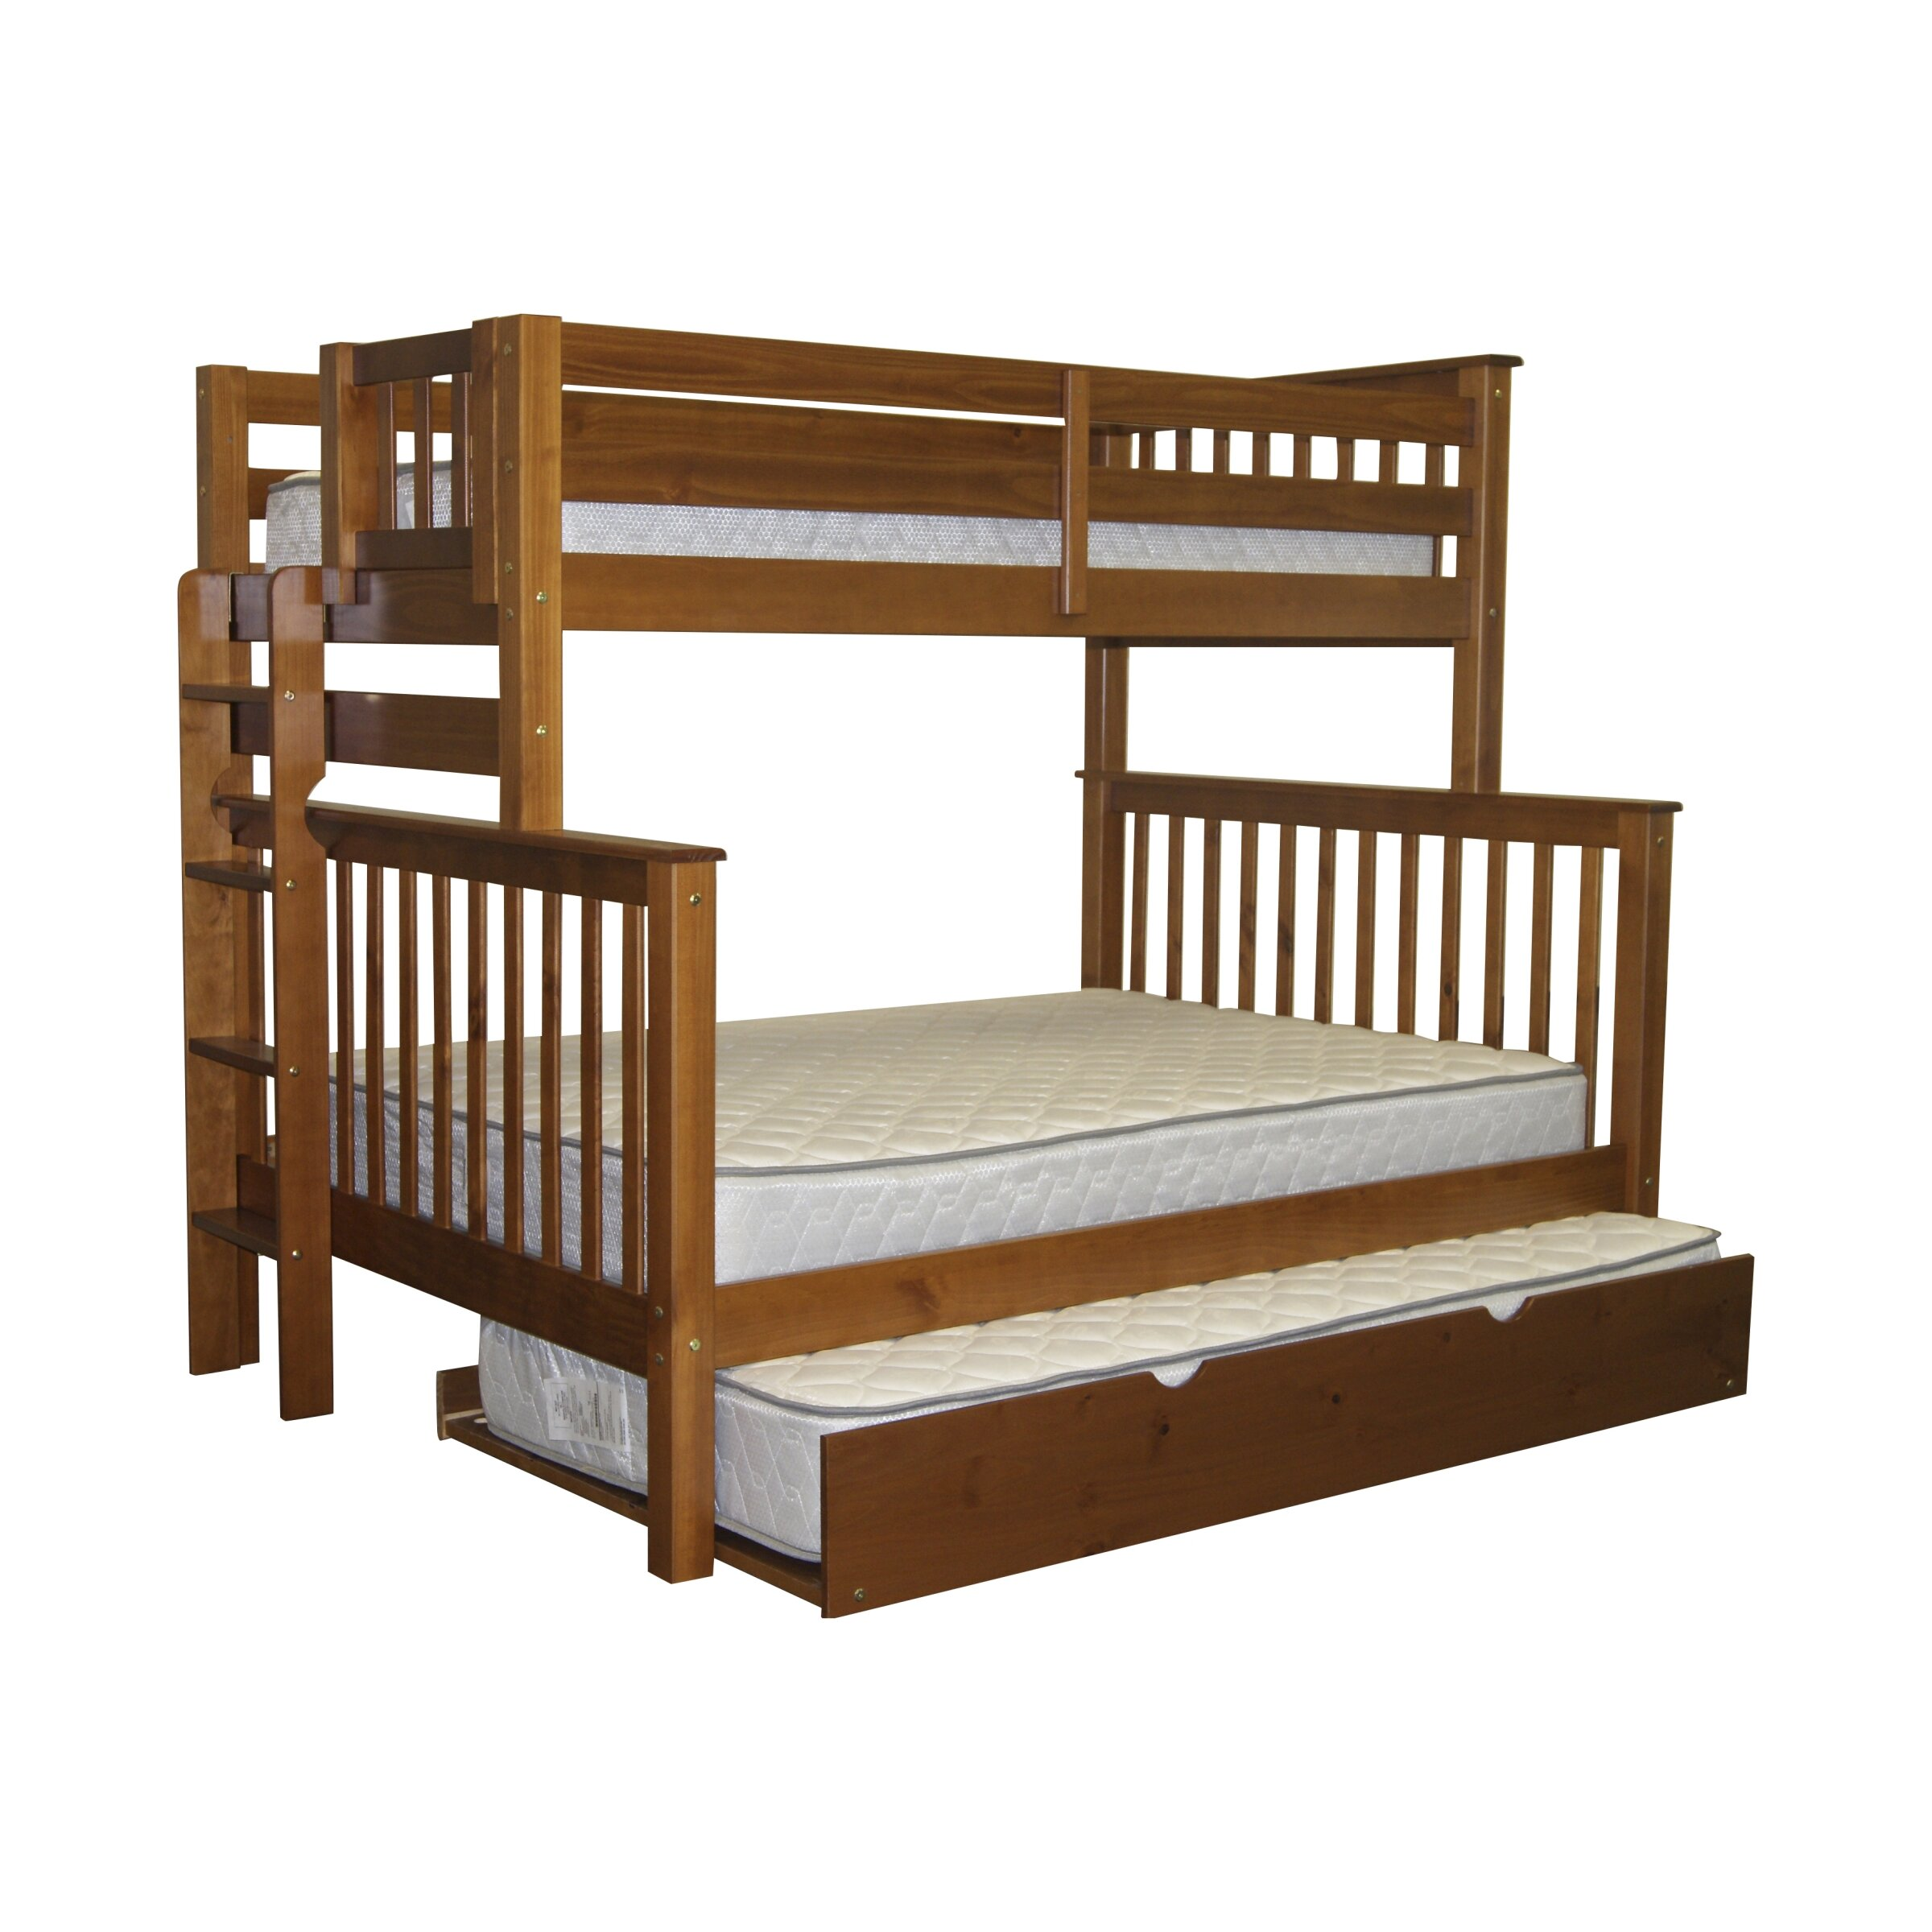 bedz king mission twin over full bunk bed reviews wayfair. Black Bedroom Furniture Sets. Home Design Ideas